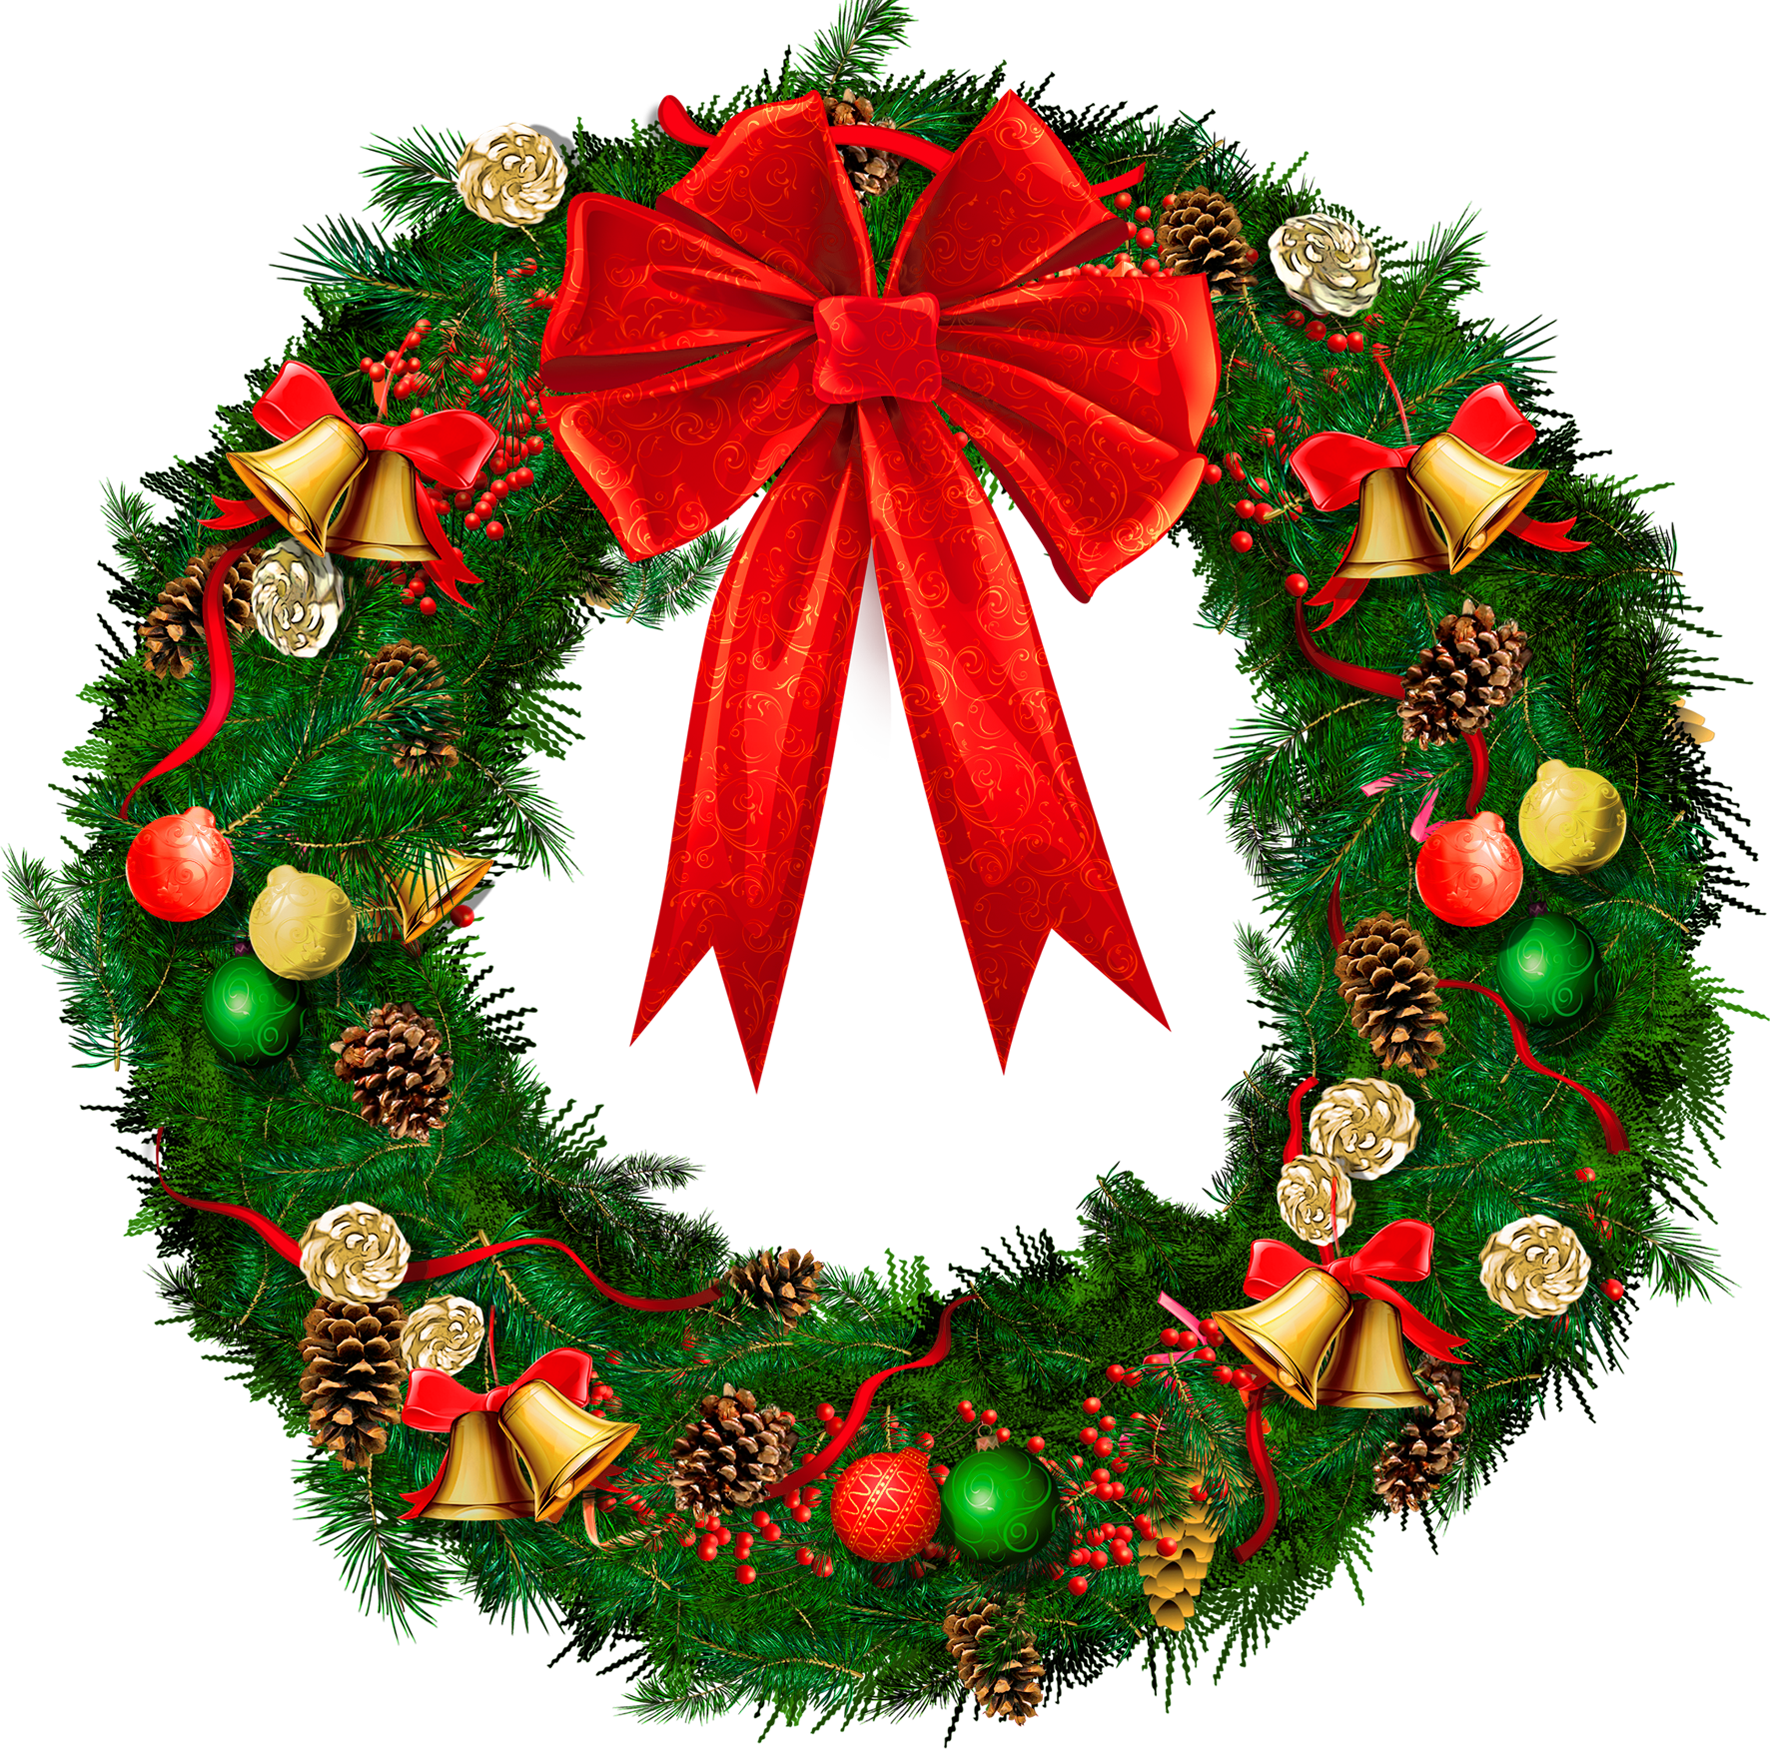 Christmas wreath border png. Transparent with red bow